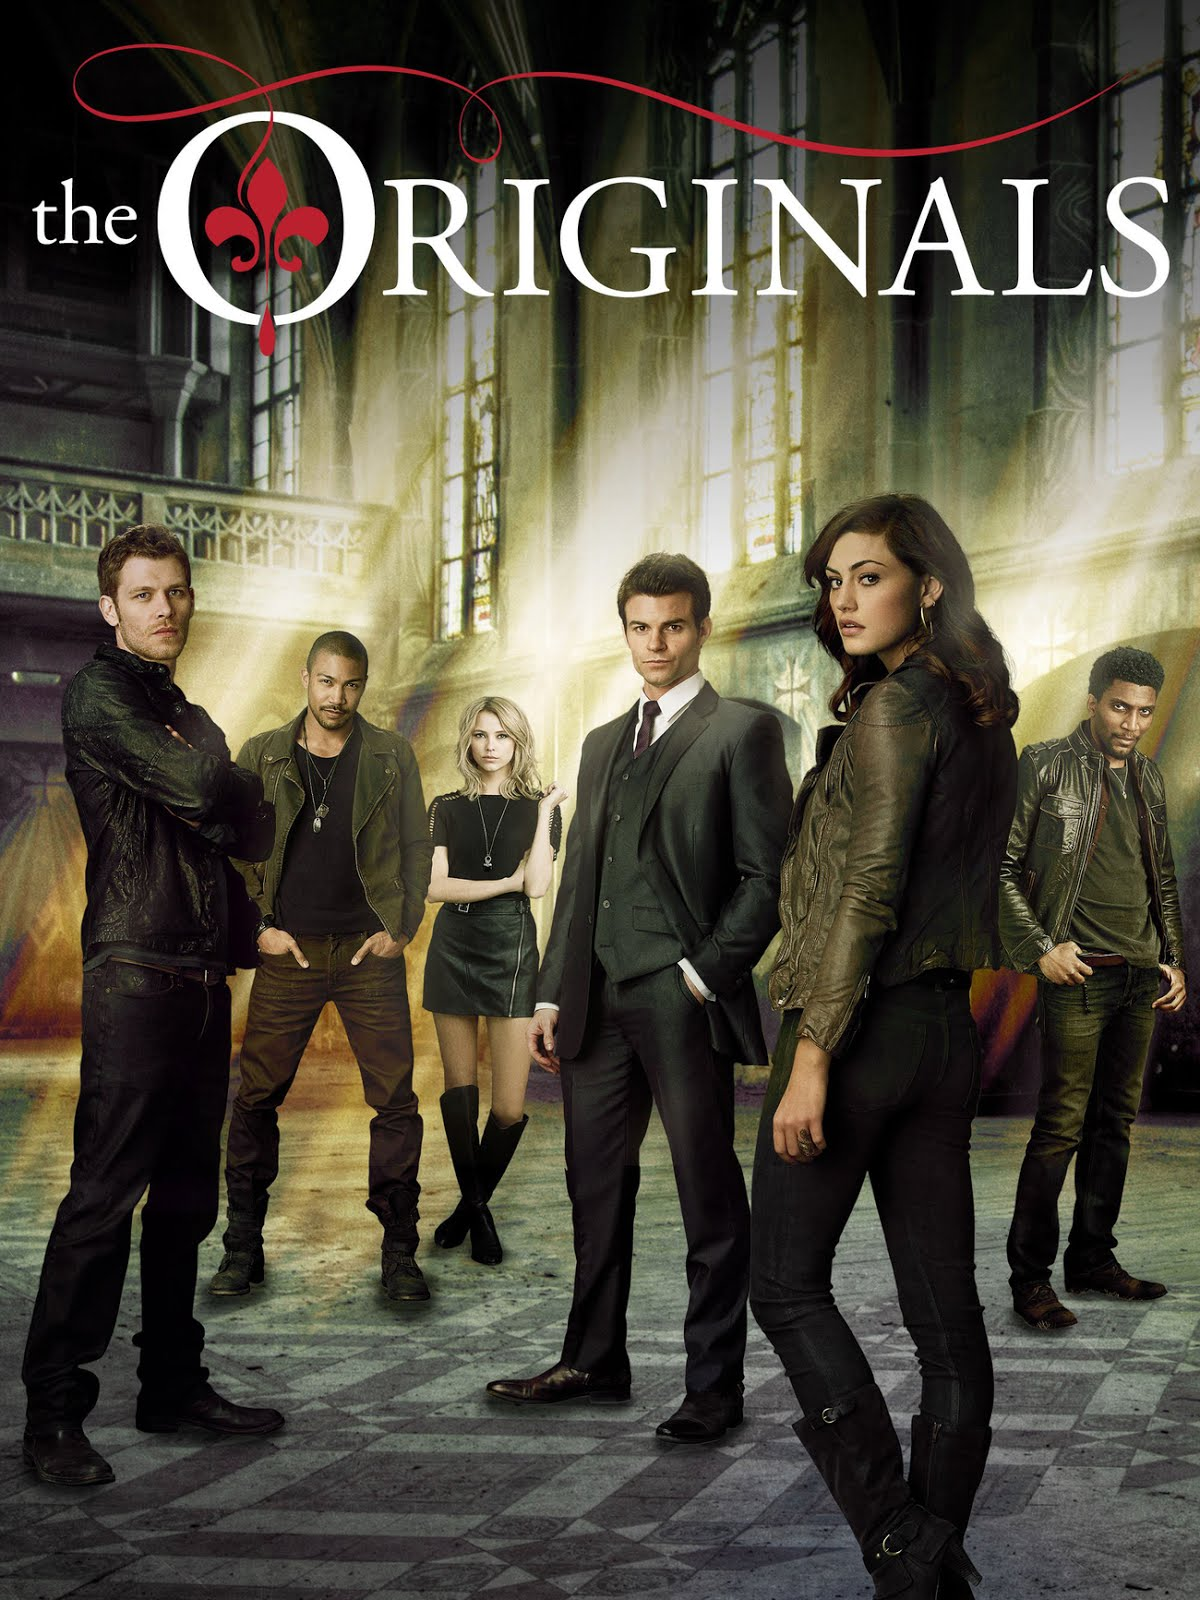 The Originals S01 Episode 11 Dual Audio 720p BluRay x264 [Hindi + English]